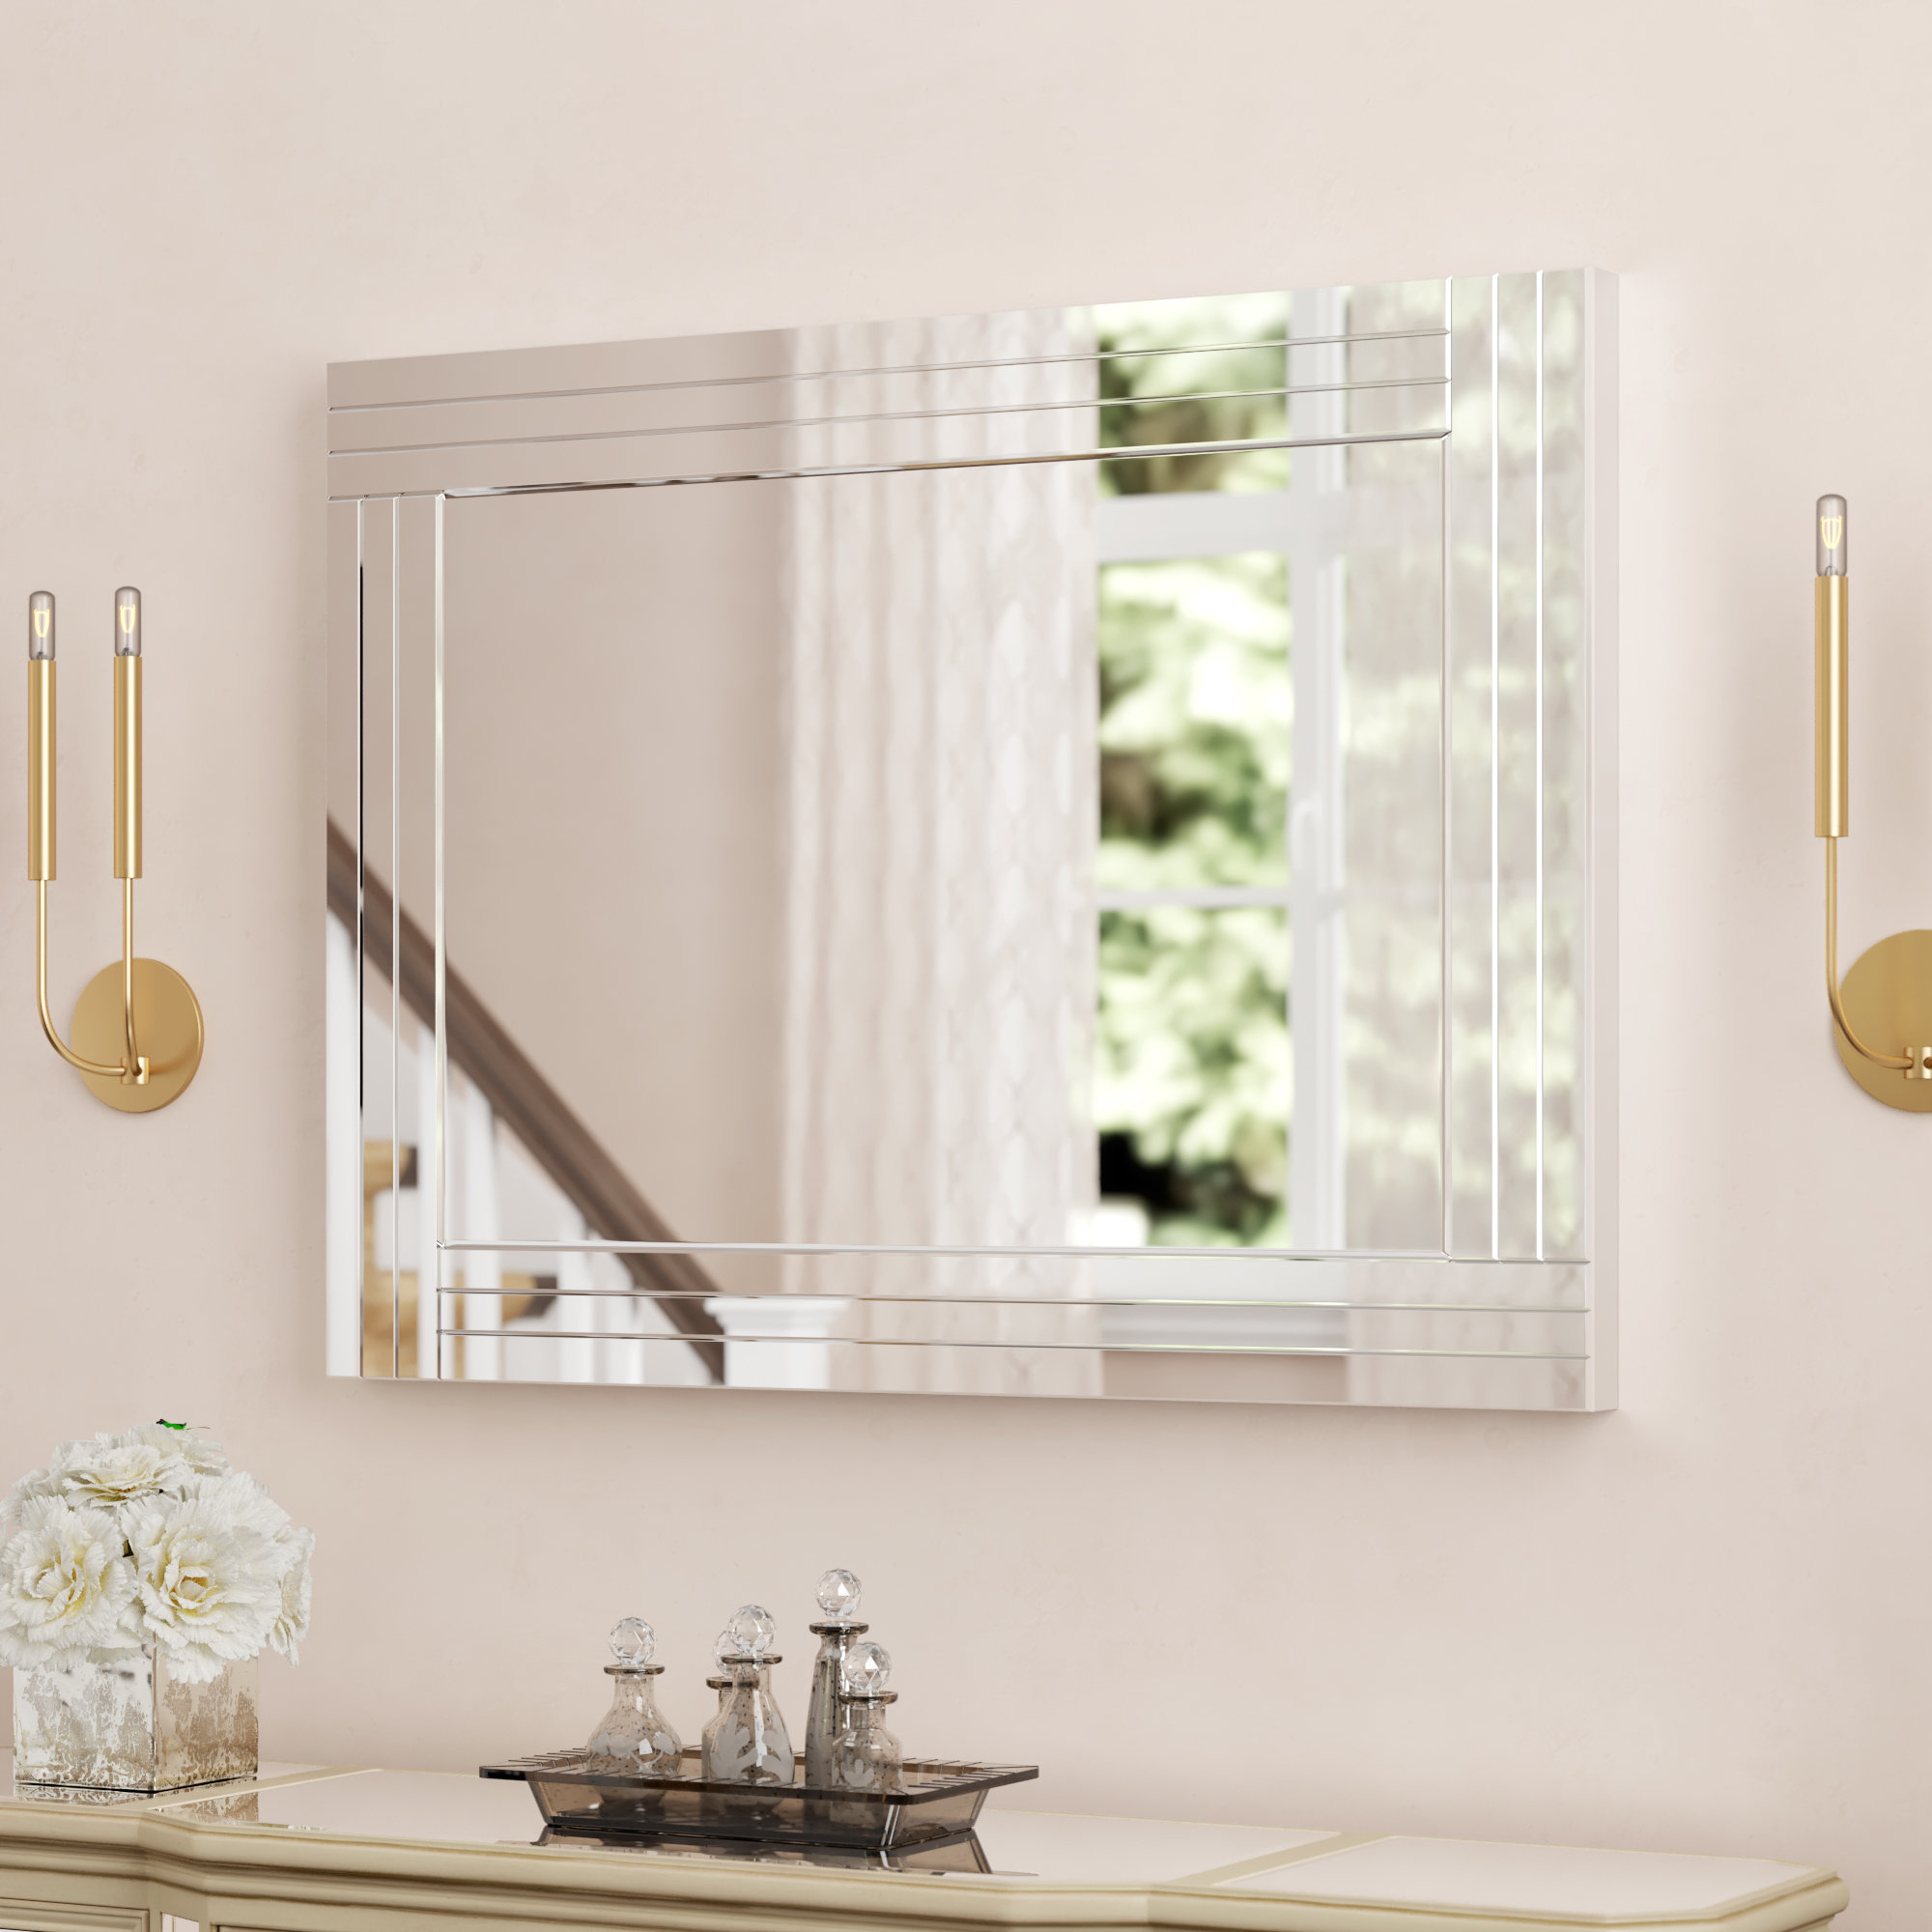 Widely Used Colton Modern & Contemporary Wall Mirrors Inside Willa Arlo Interiors Mattie Modern & Contemporary Wall Mirror (Gallery 7 of 20)